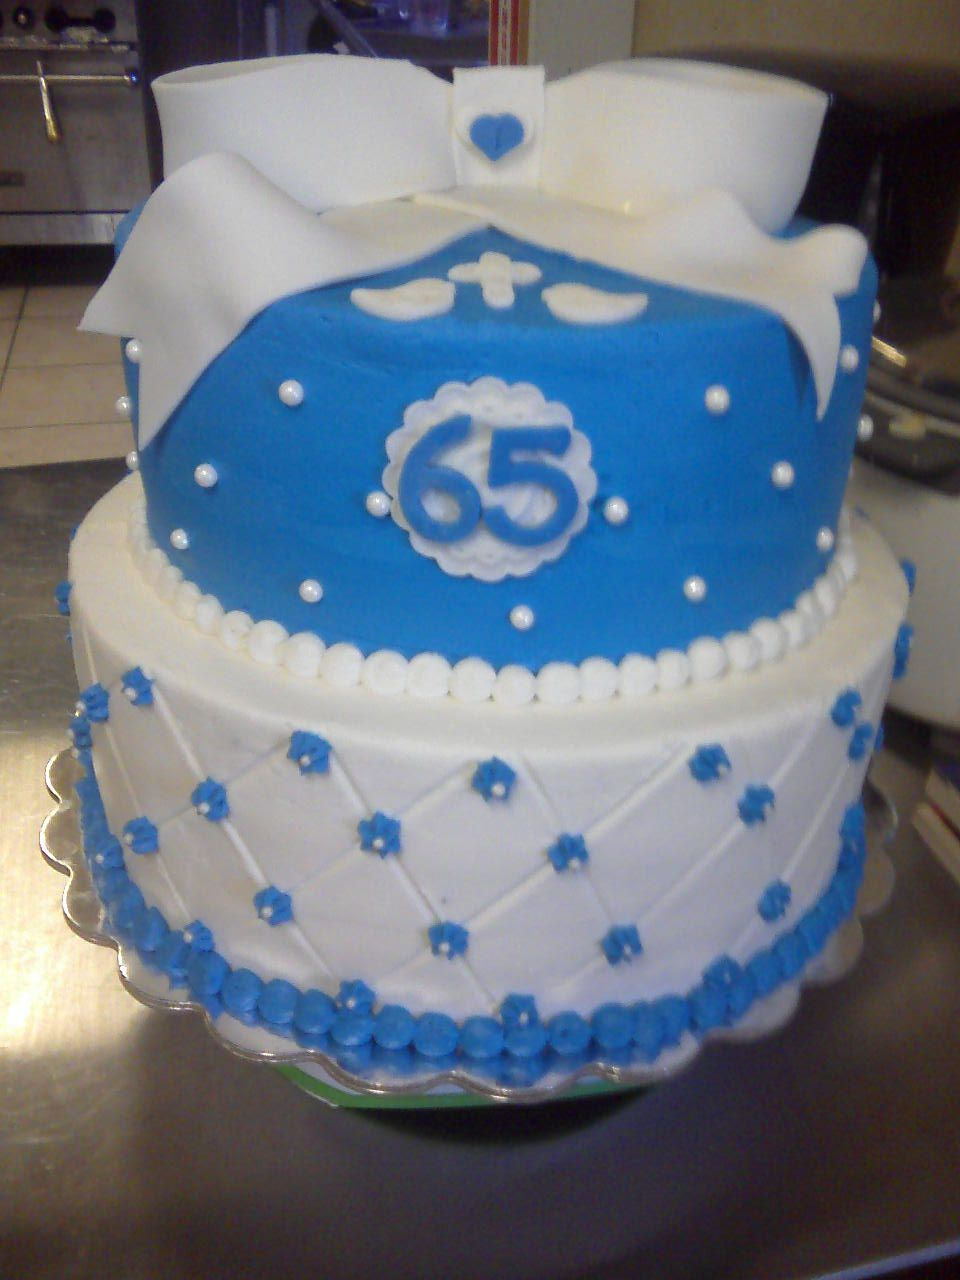 65th Wedding Anniversary Cake for a very special family